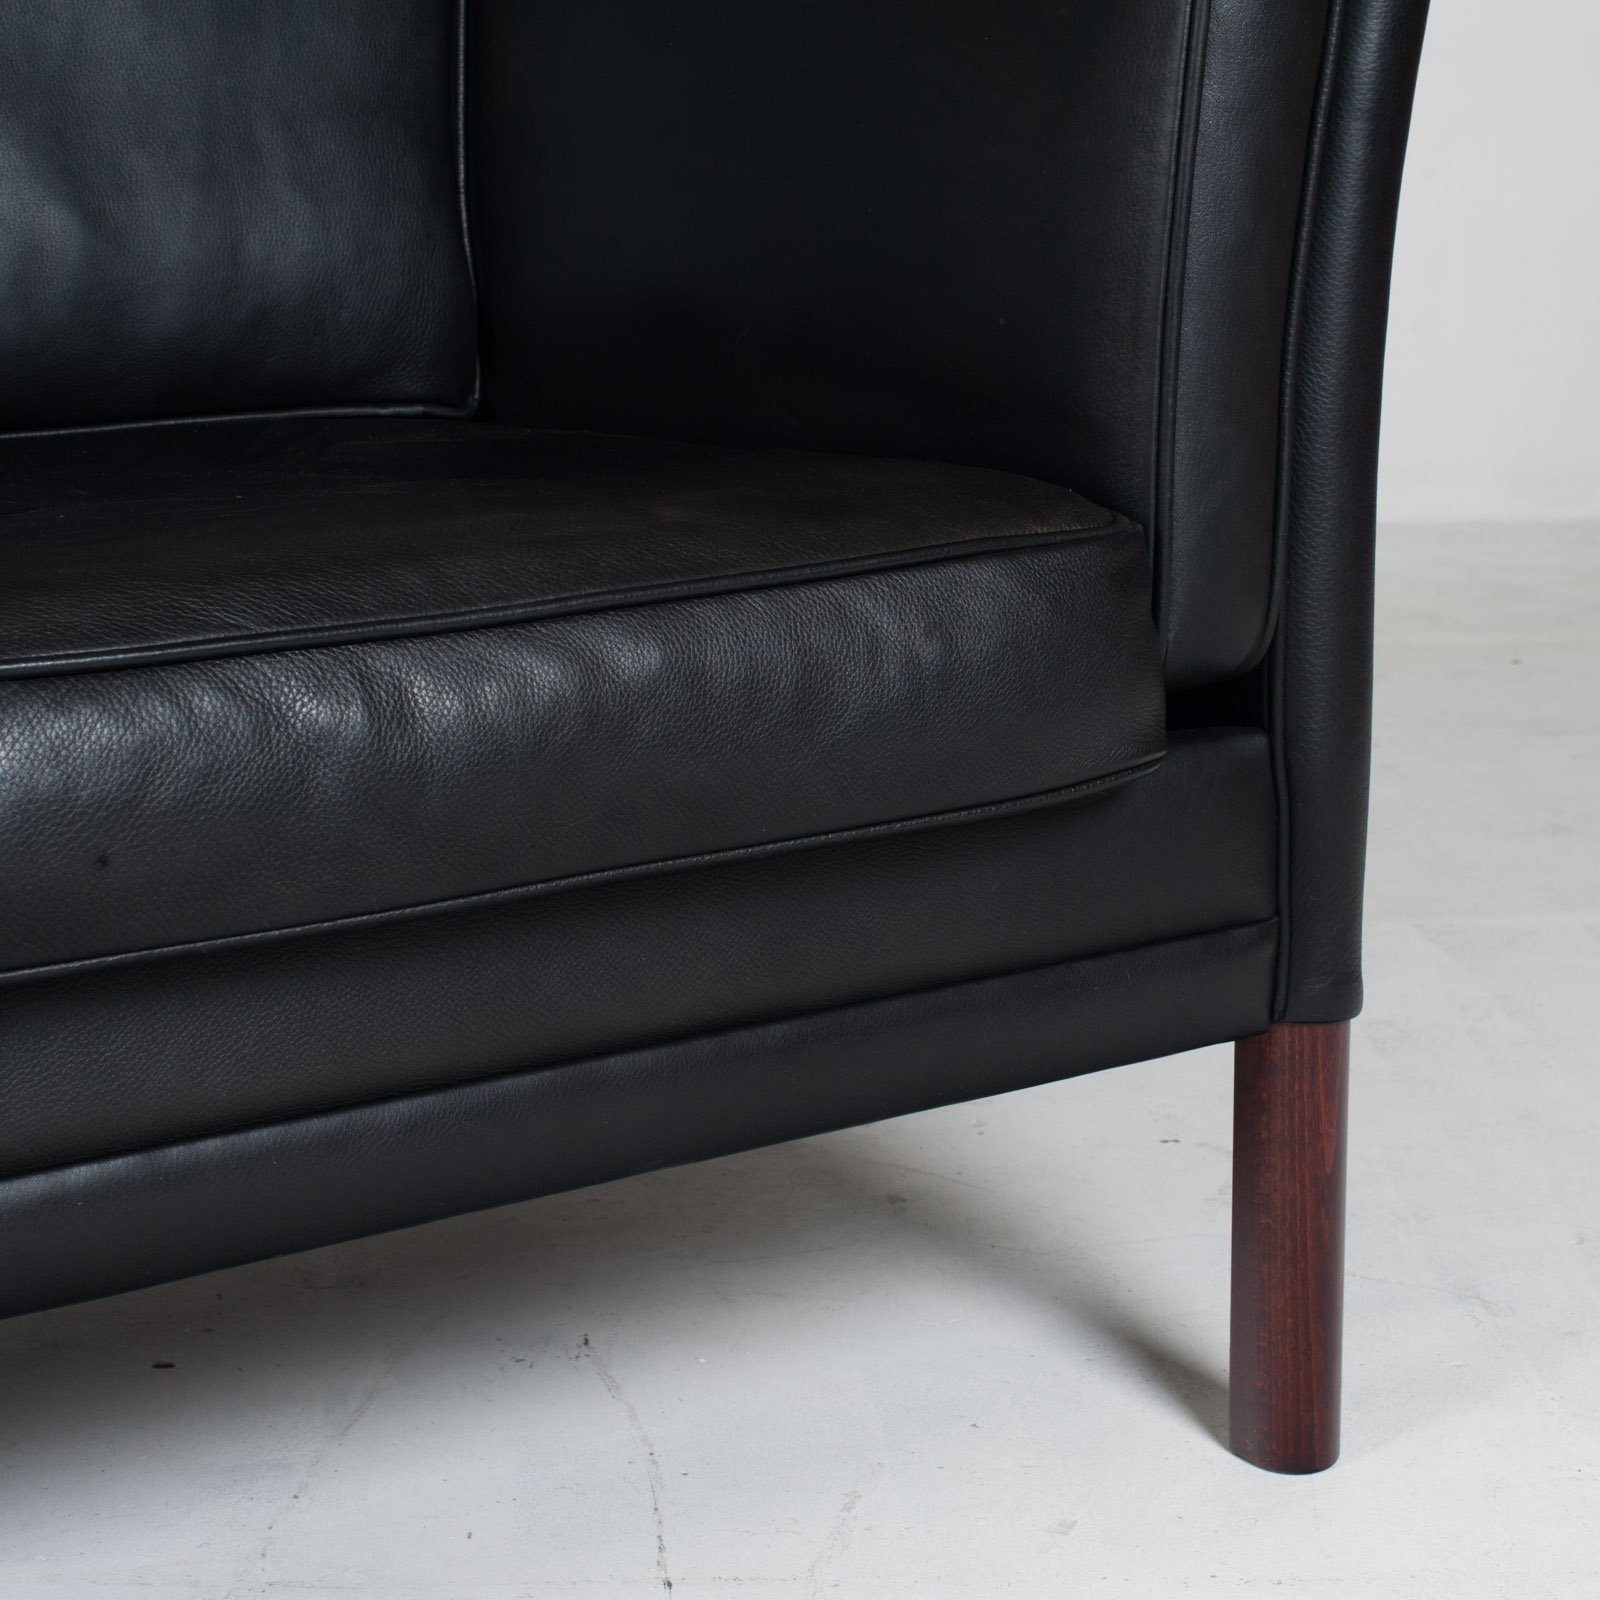 3 Seat Sofa In Black Aniline Leather 1960s Denmark 10